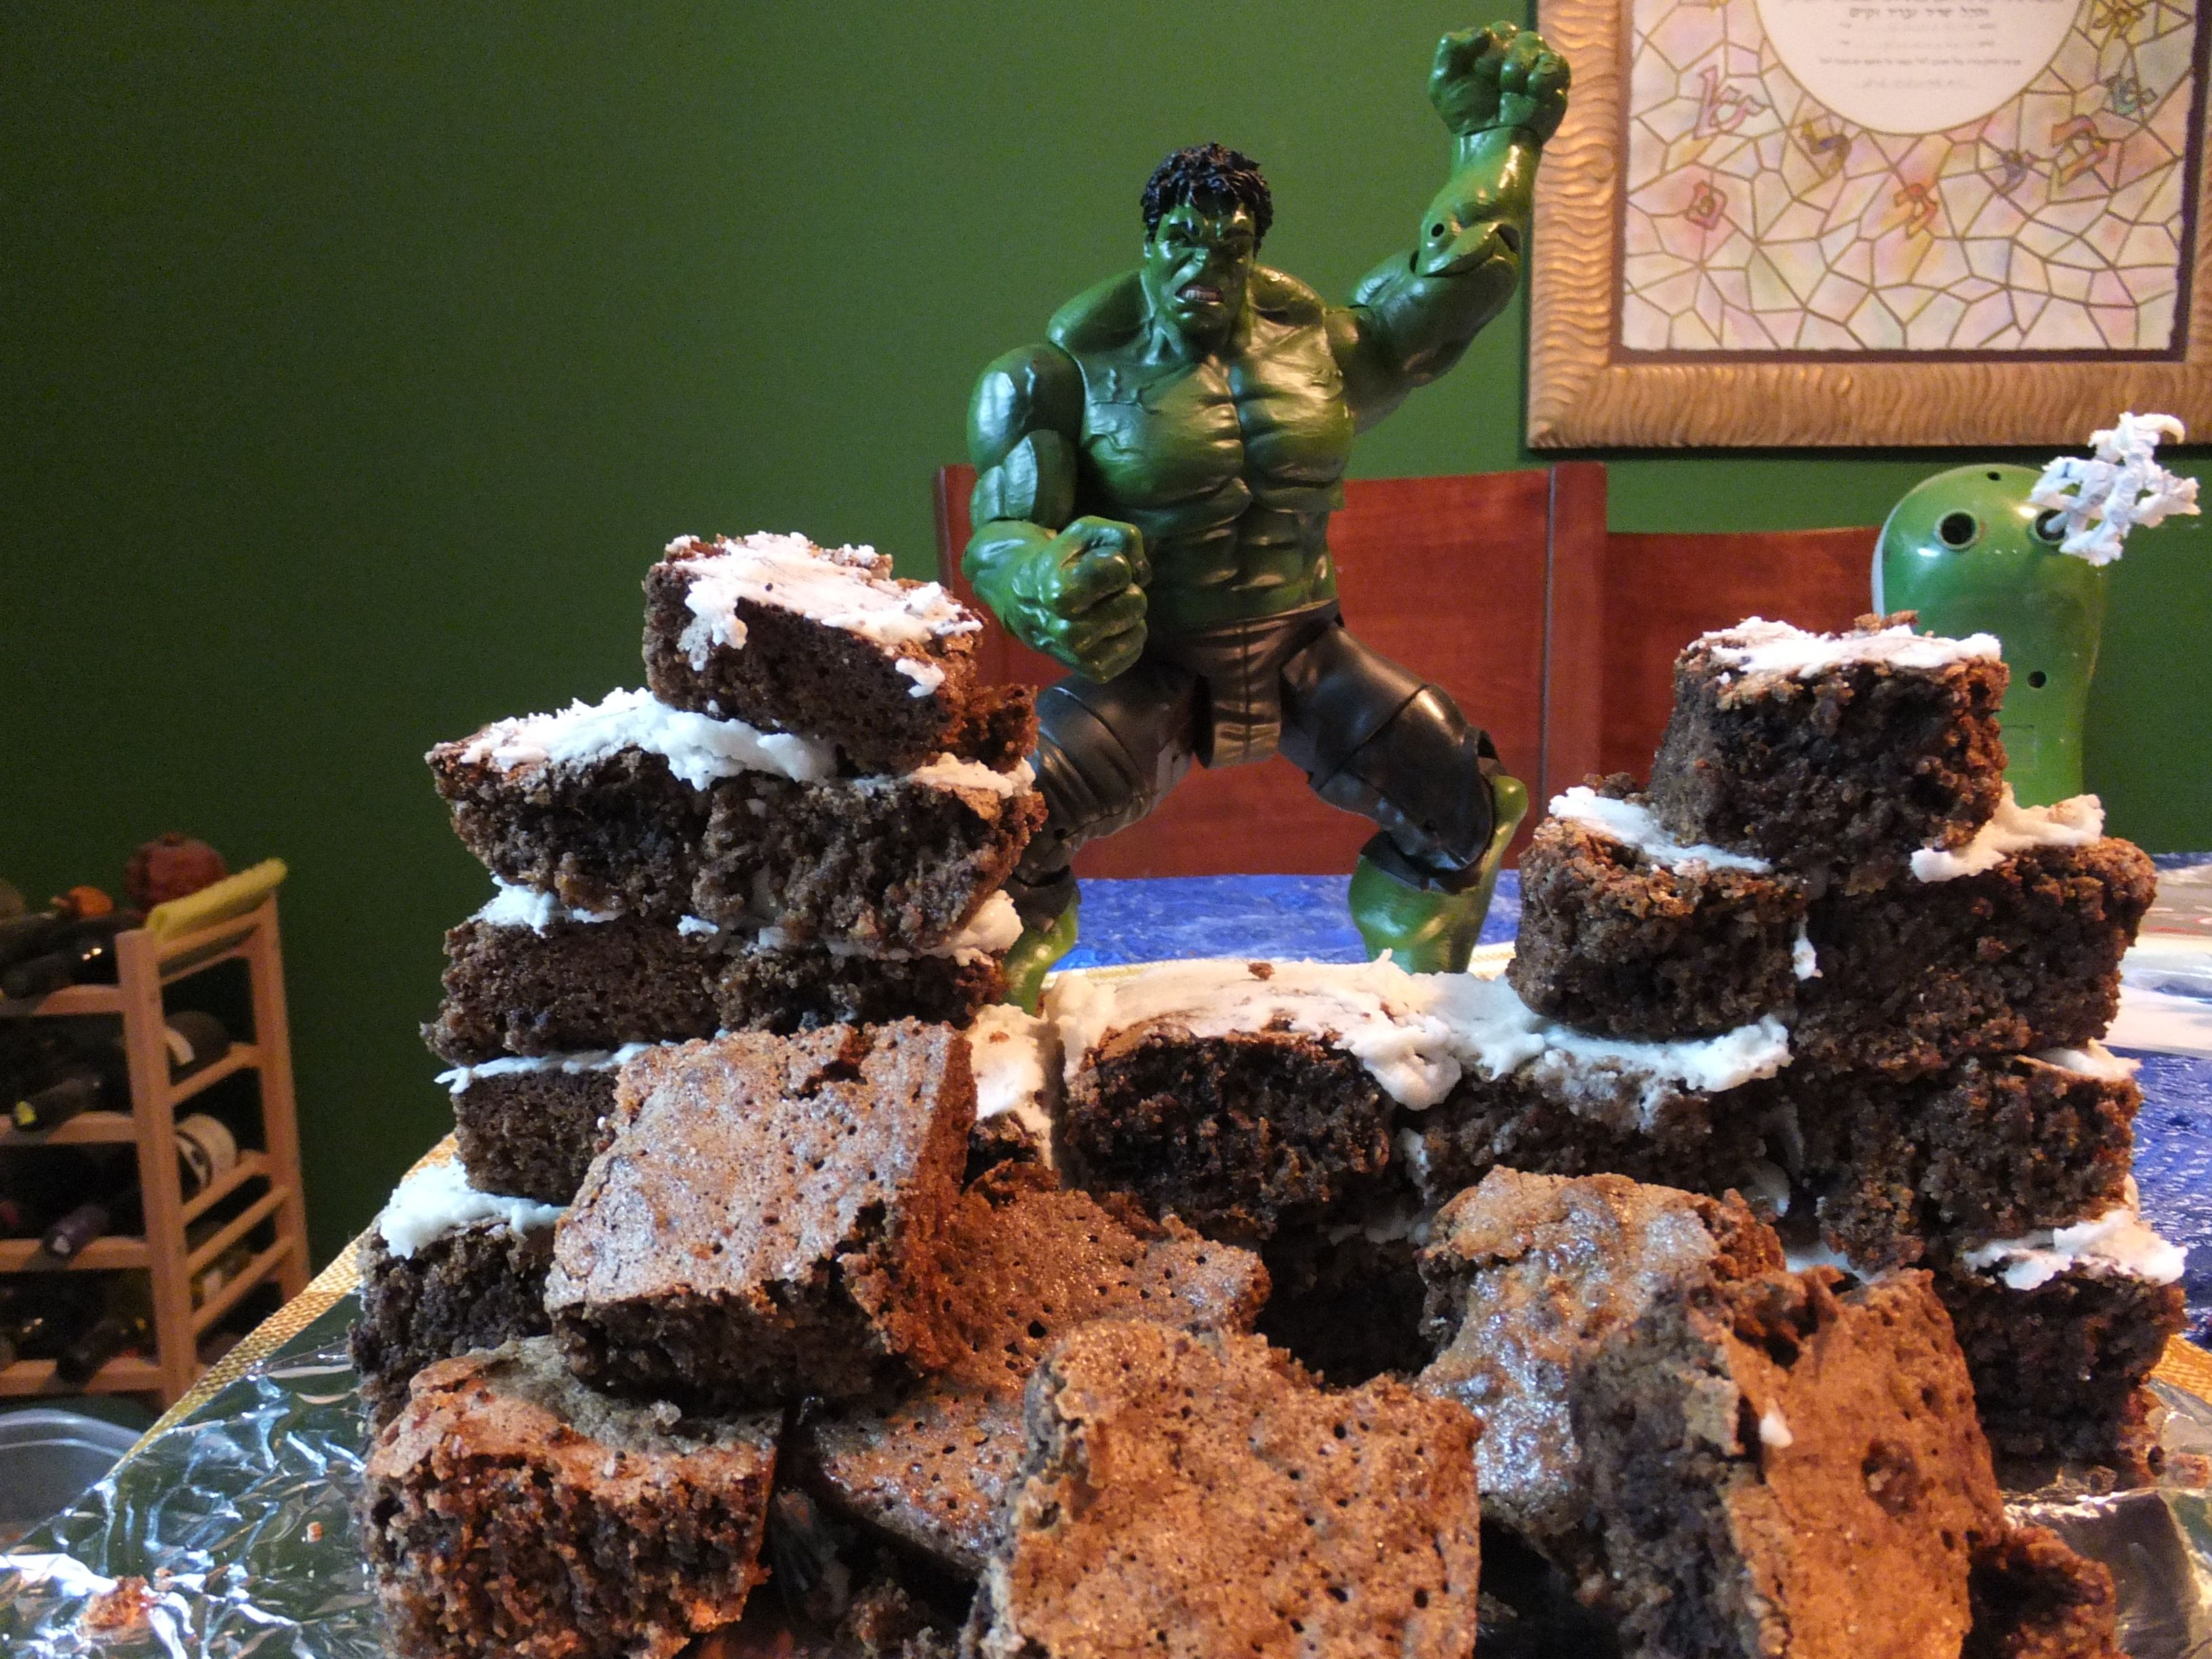 The Incredible Hulk Cake Made with Brownies and White Mint Icing (and a The Hulk action figure)